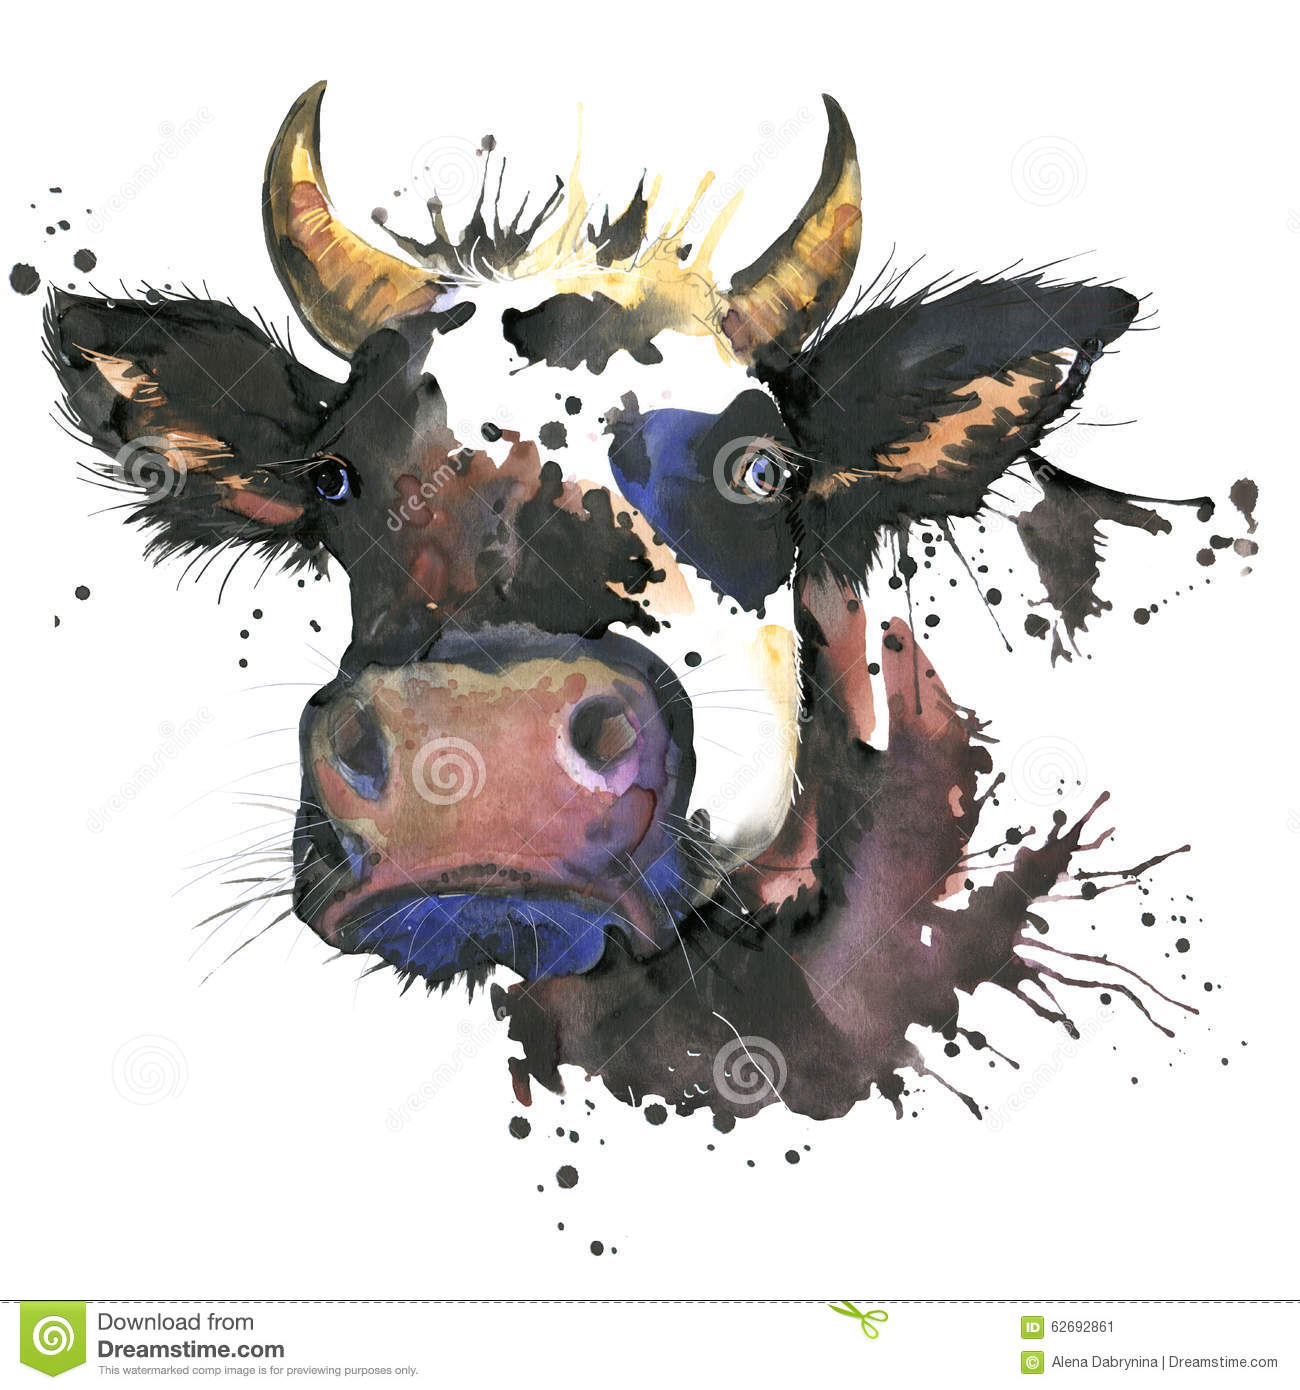 Cow watercolor graphics. cow animal illustration